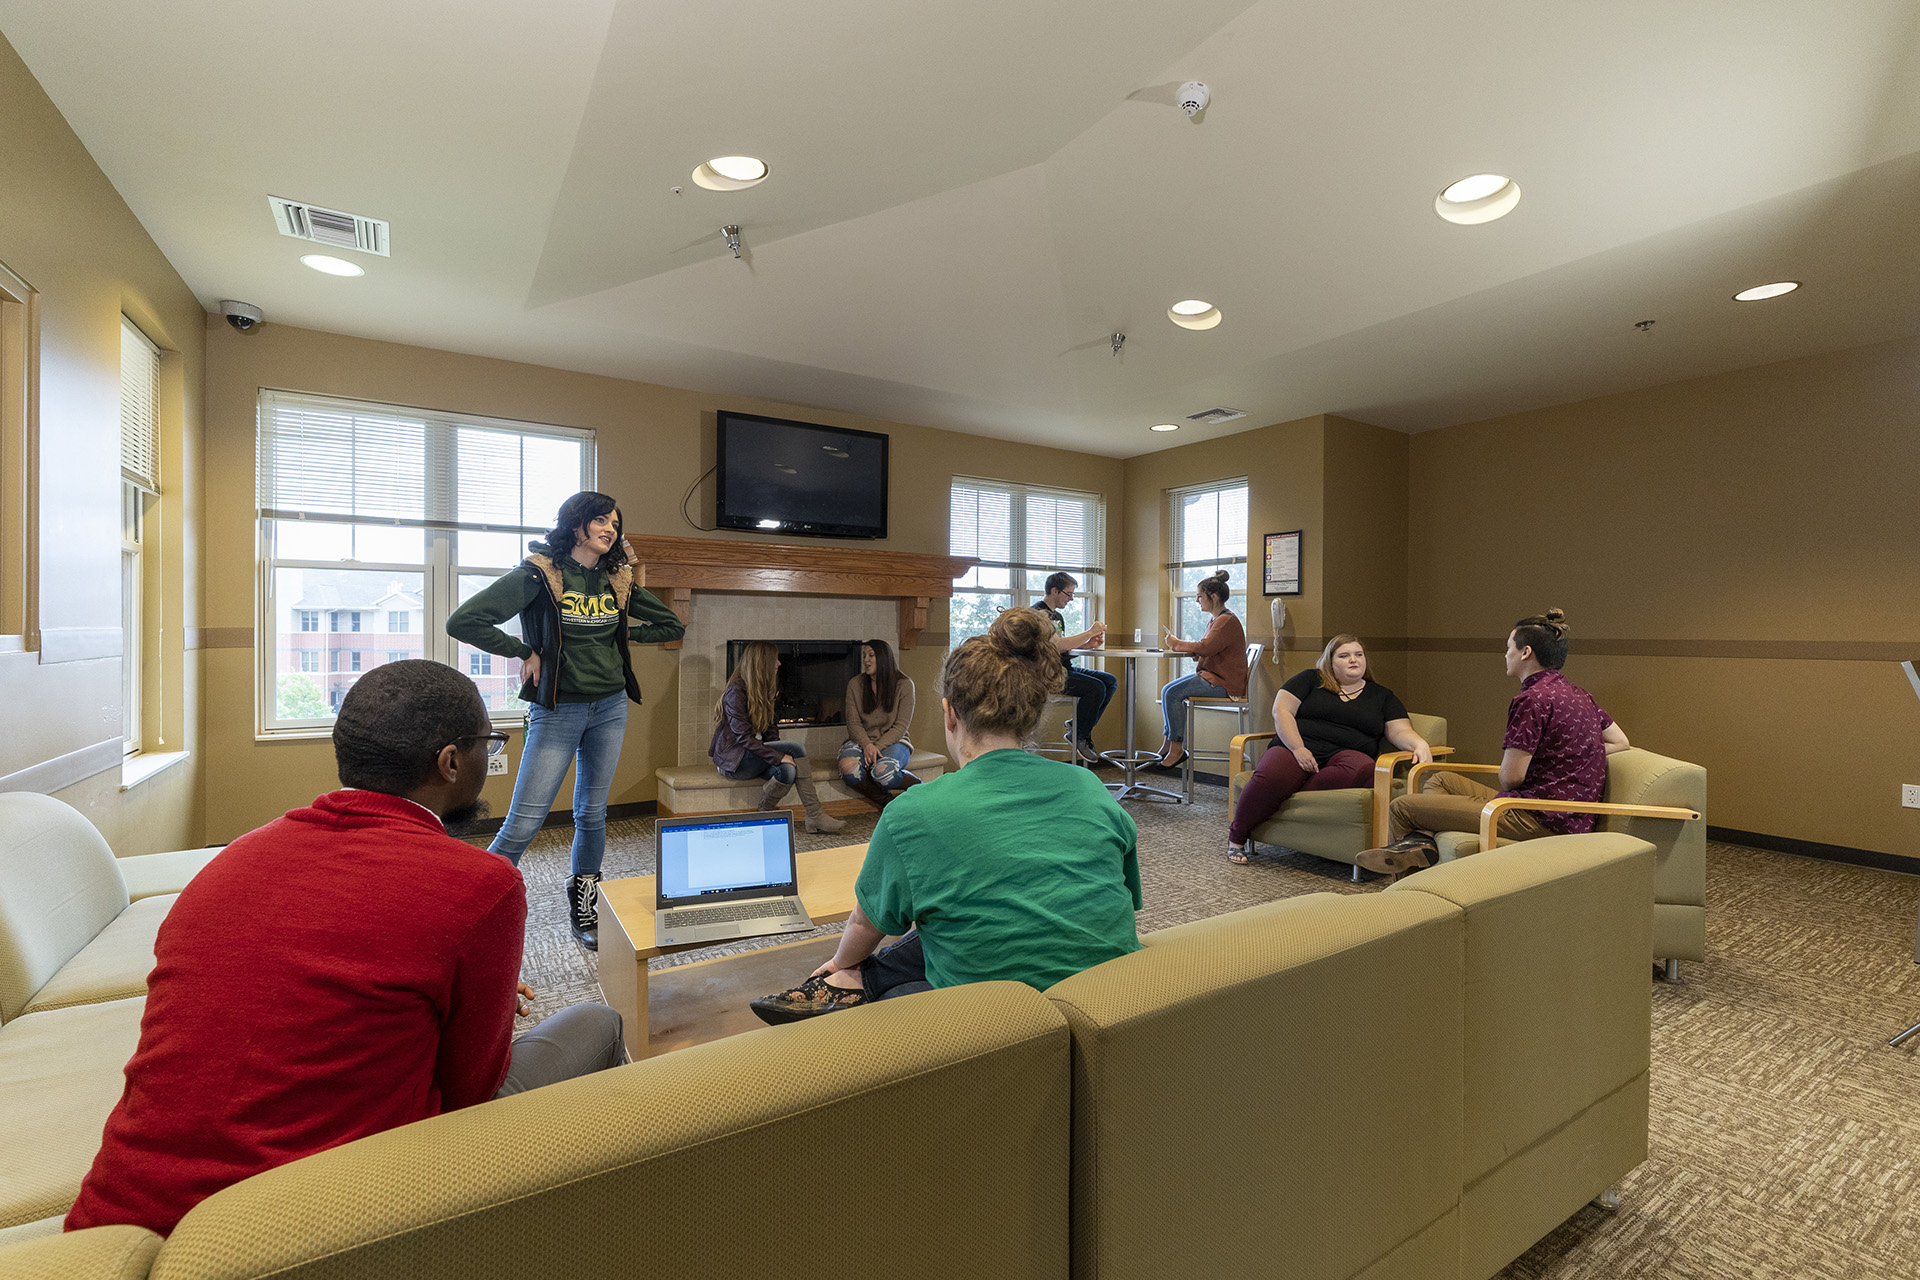 Students talking and watching TV in the Residence Halls common area